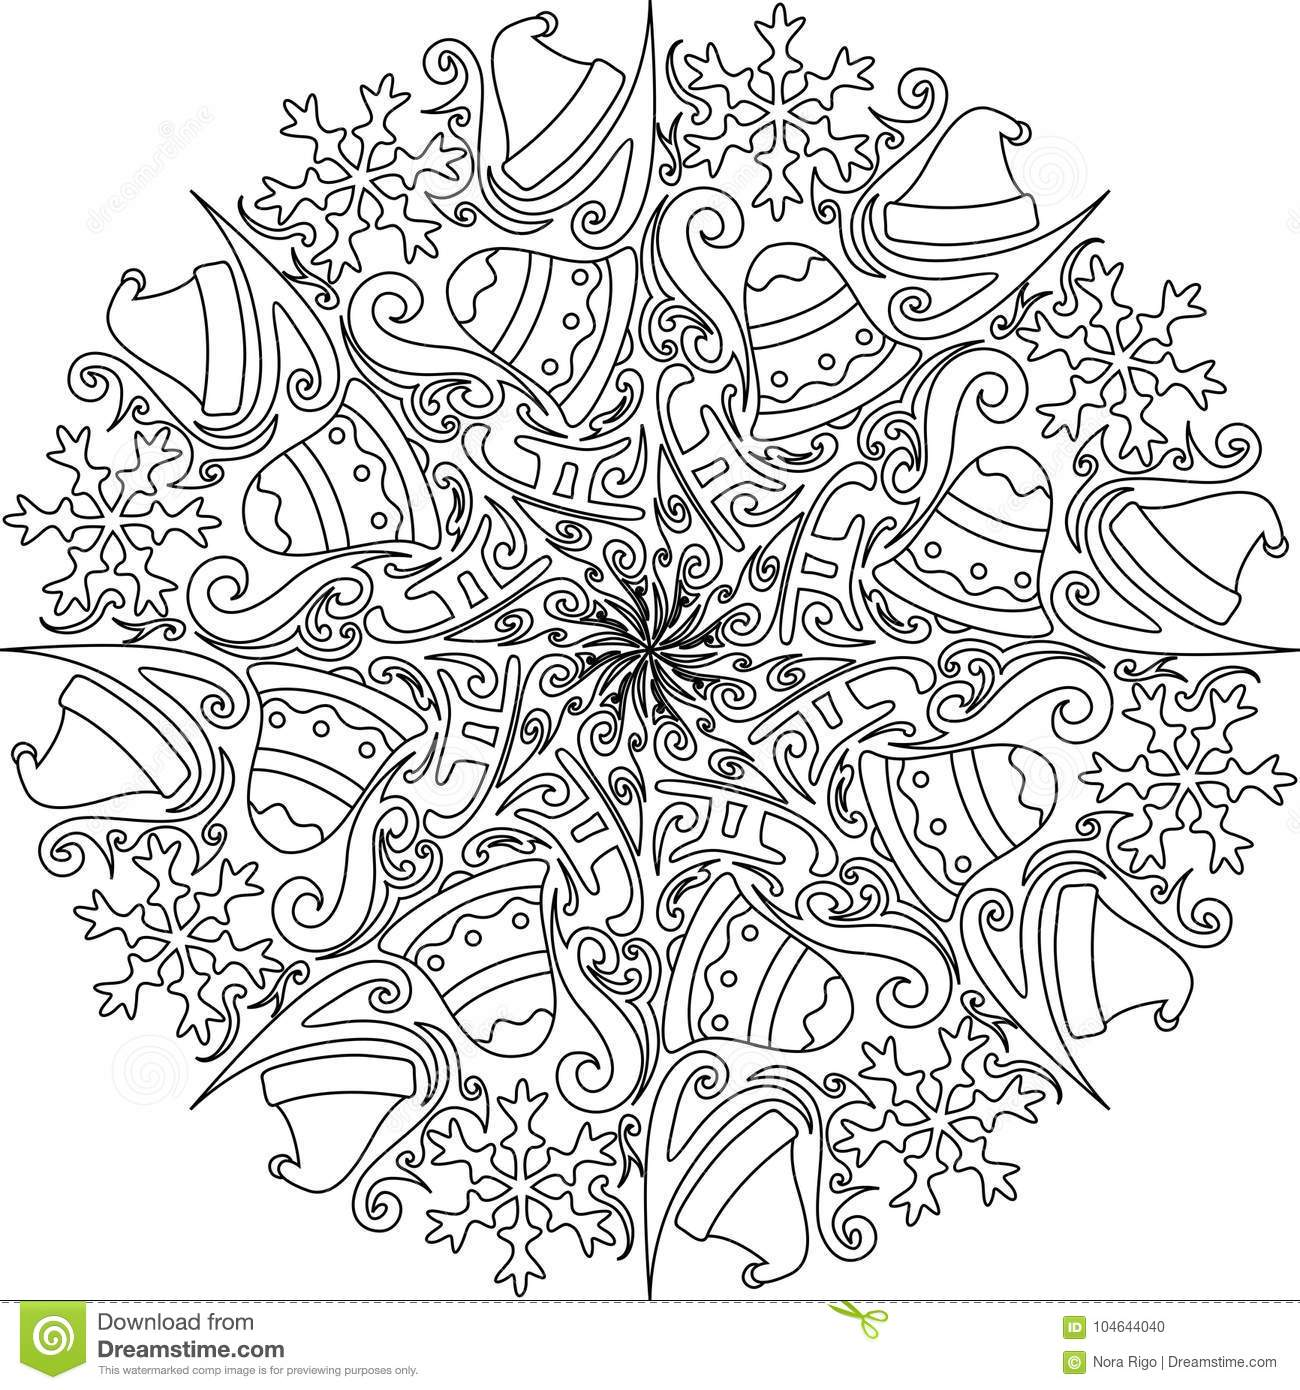 Christmas Mandalas Coloring Book With Mandala Decoration Stock Vector Illustration Of Holiday